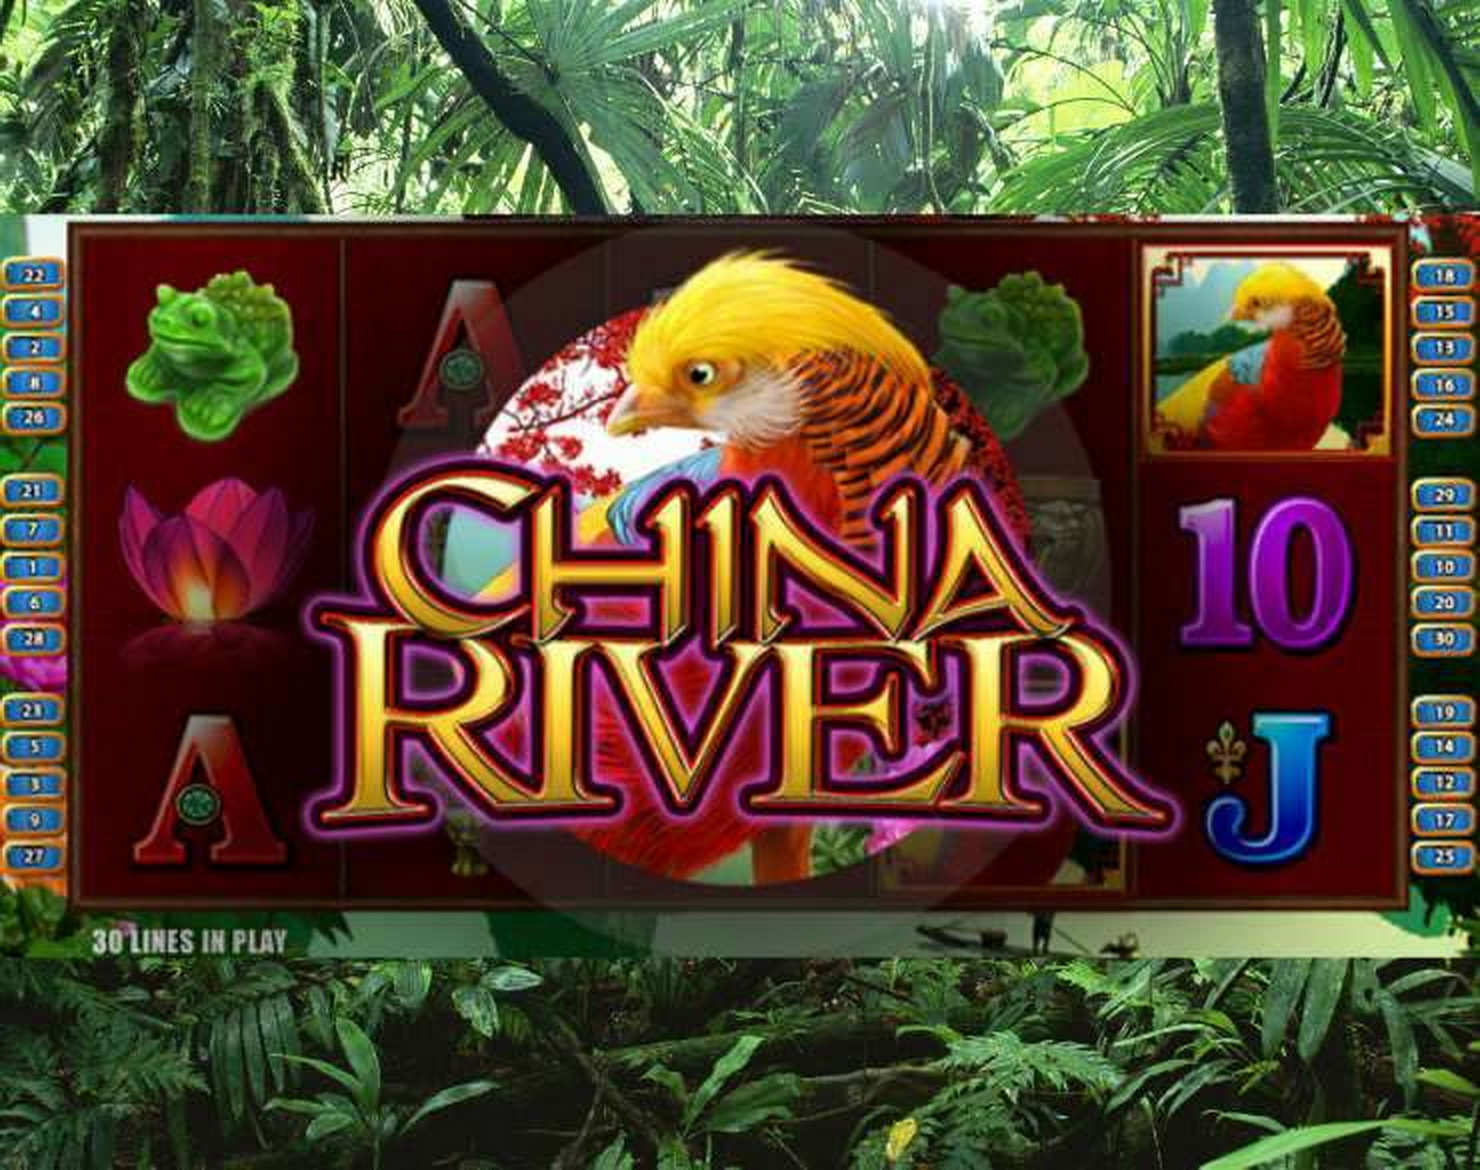 China River Online Slot Demo Game by Bally Technologies